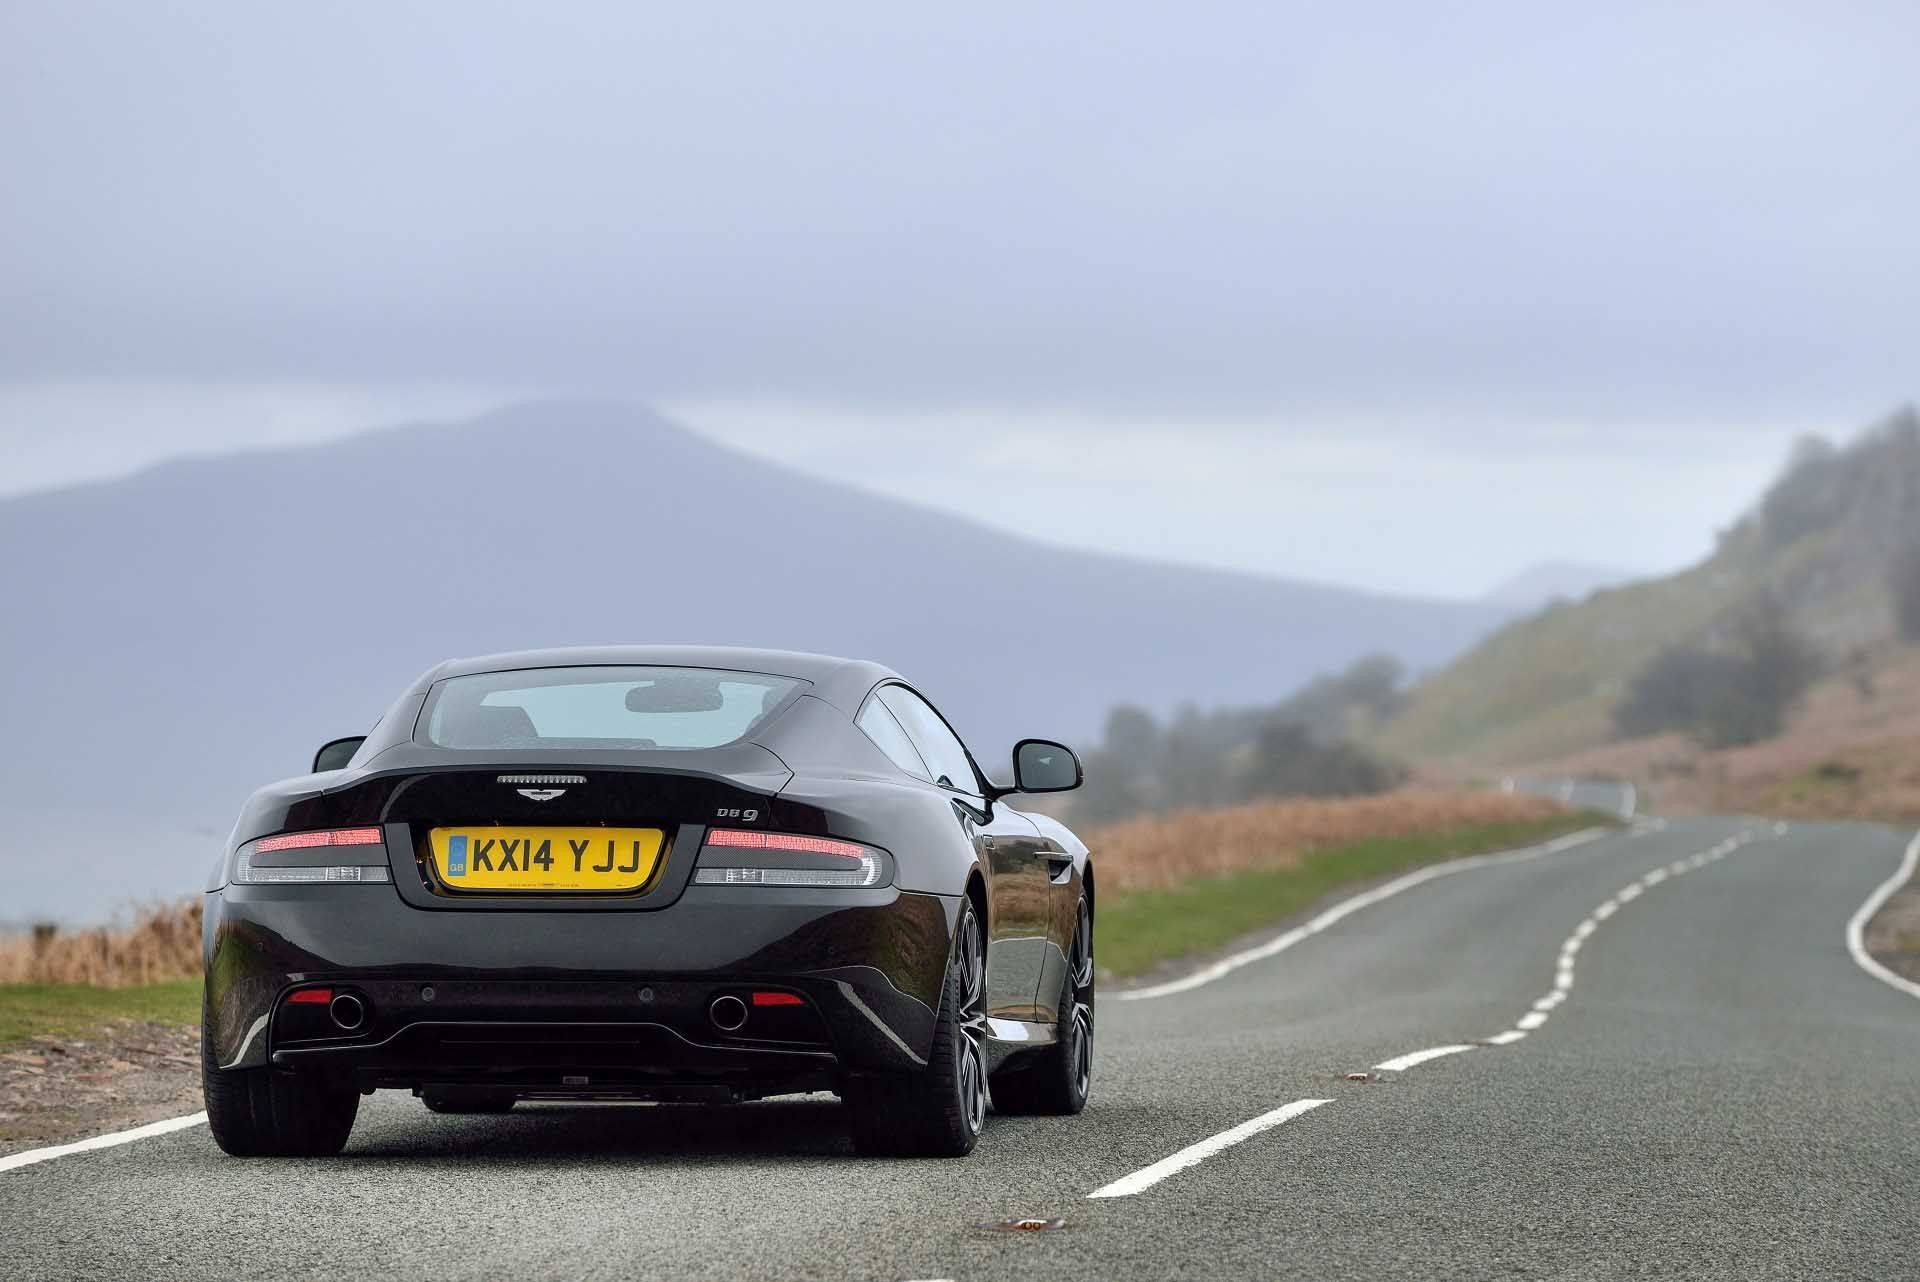 Most Expensive aston Martin Awesome 10 Great aston Martin Db9 Carbon Edition Rear View